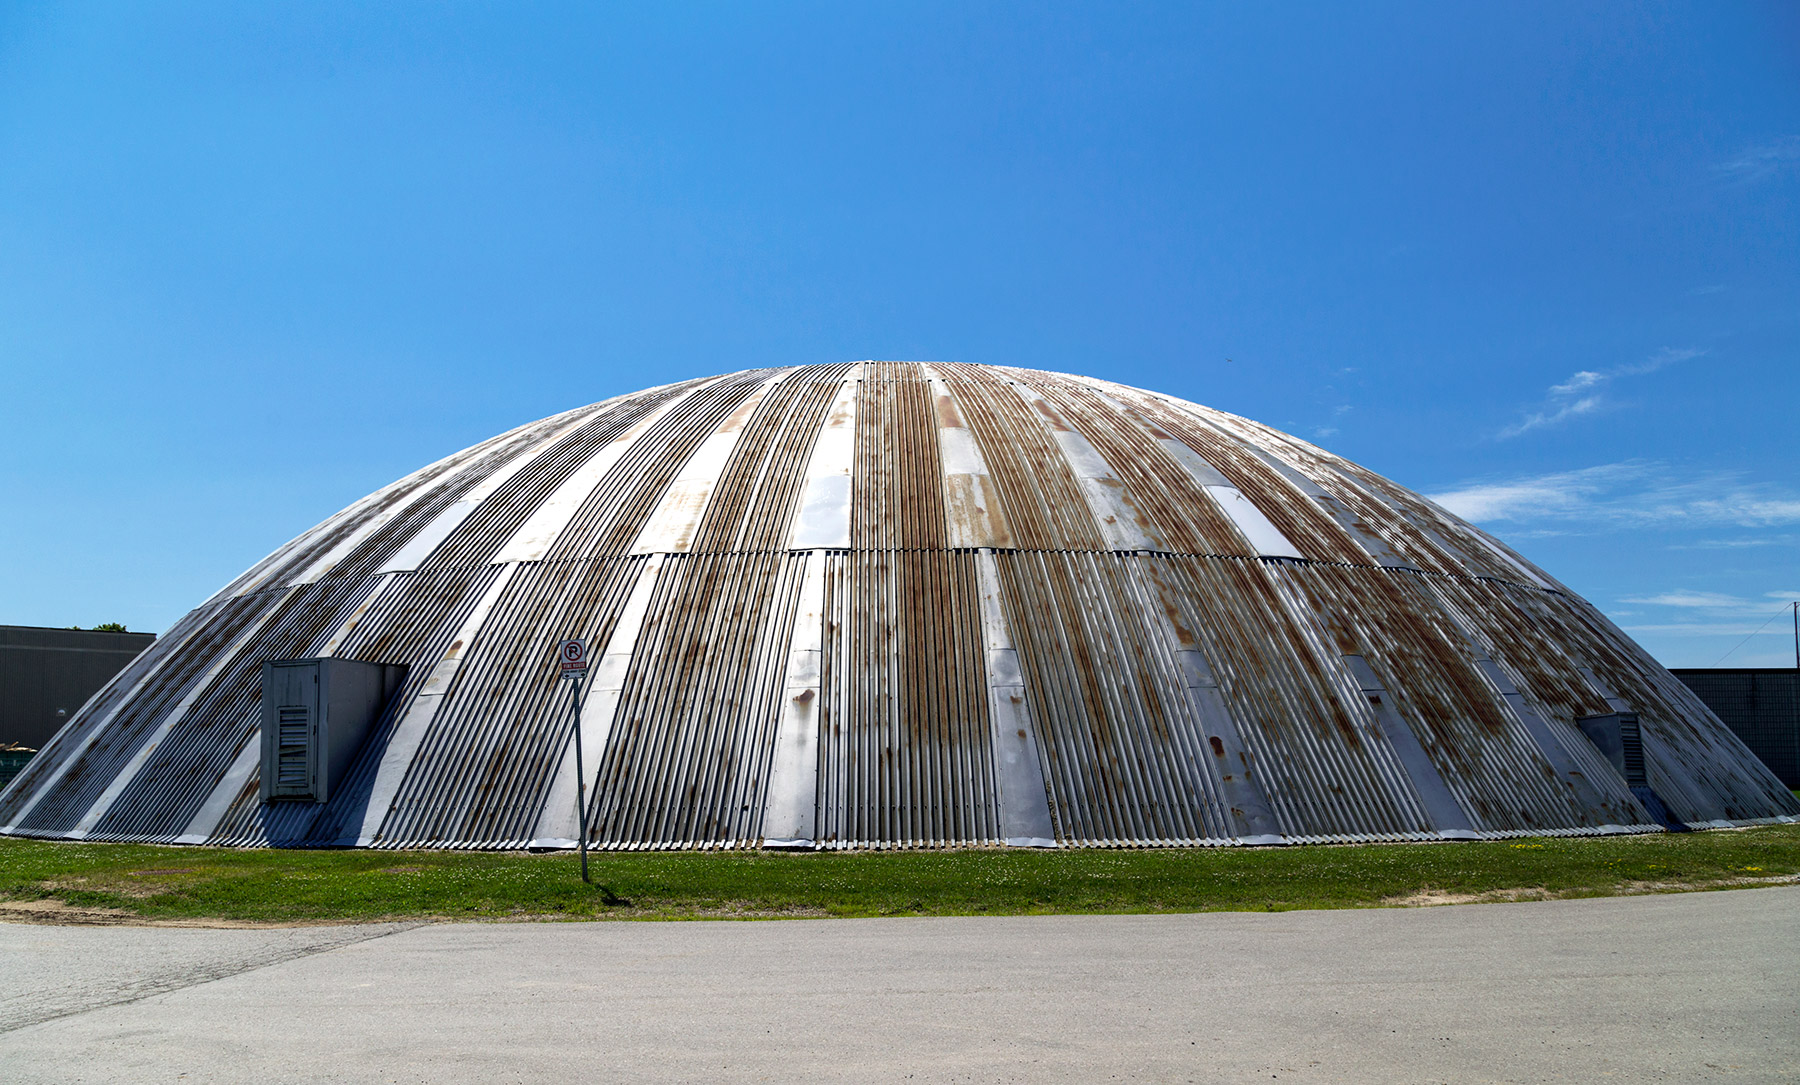 20150720. Toronto's UTIAS spherical-cap-shaped MarsDome robotics